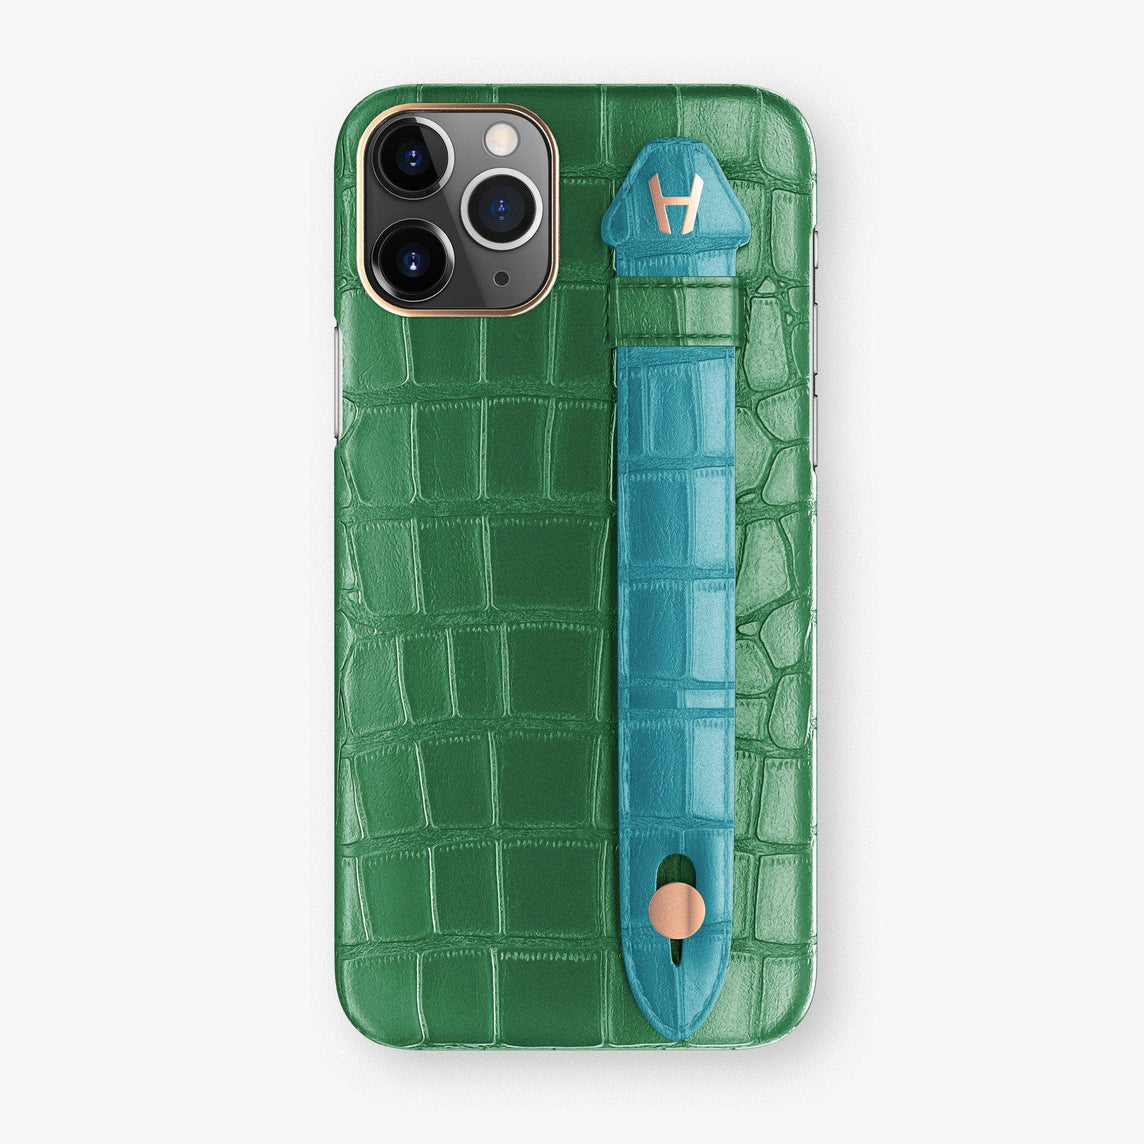 Alligator Finger Case iPhone 11 Pro | Green Emerald/Blue Teal  - Rose Gold